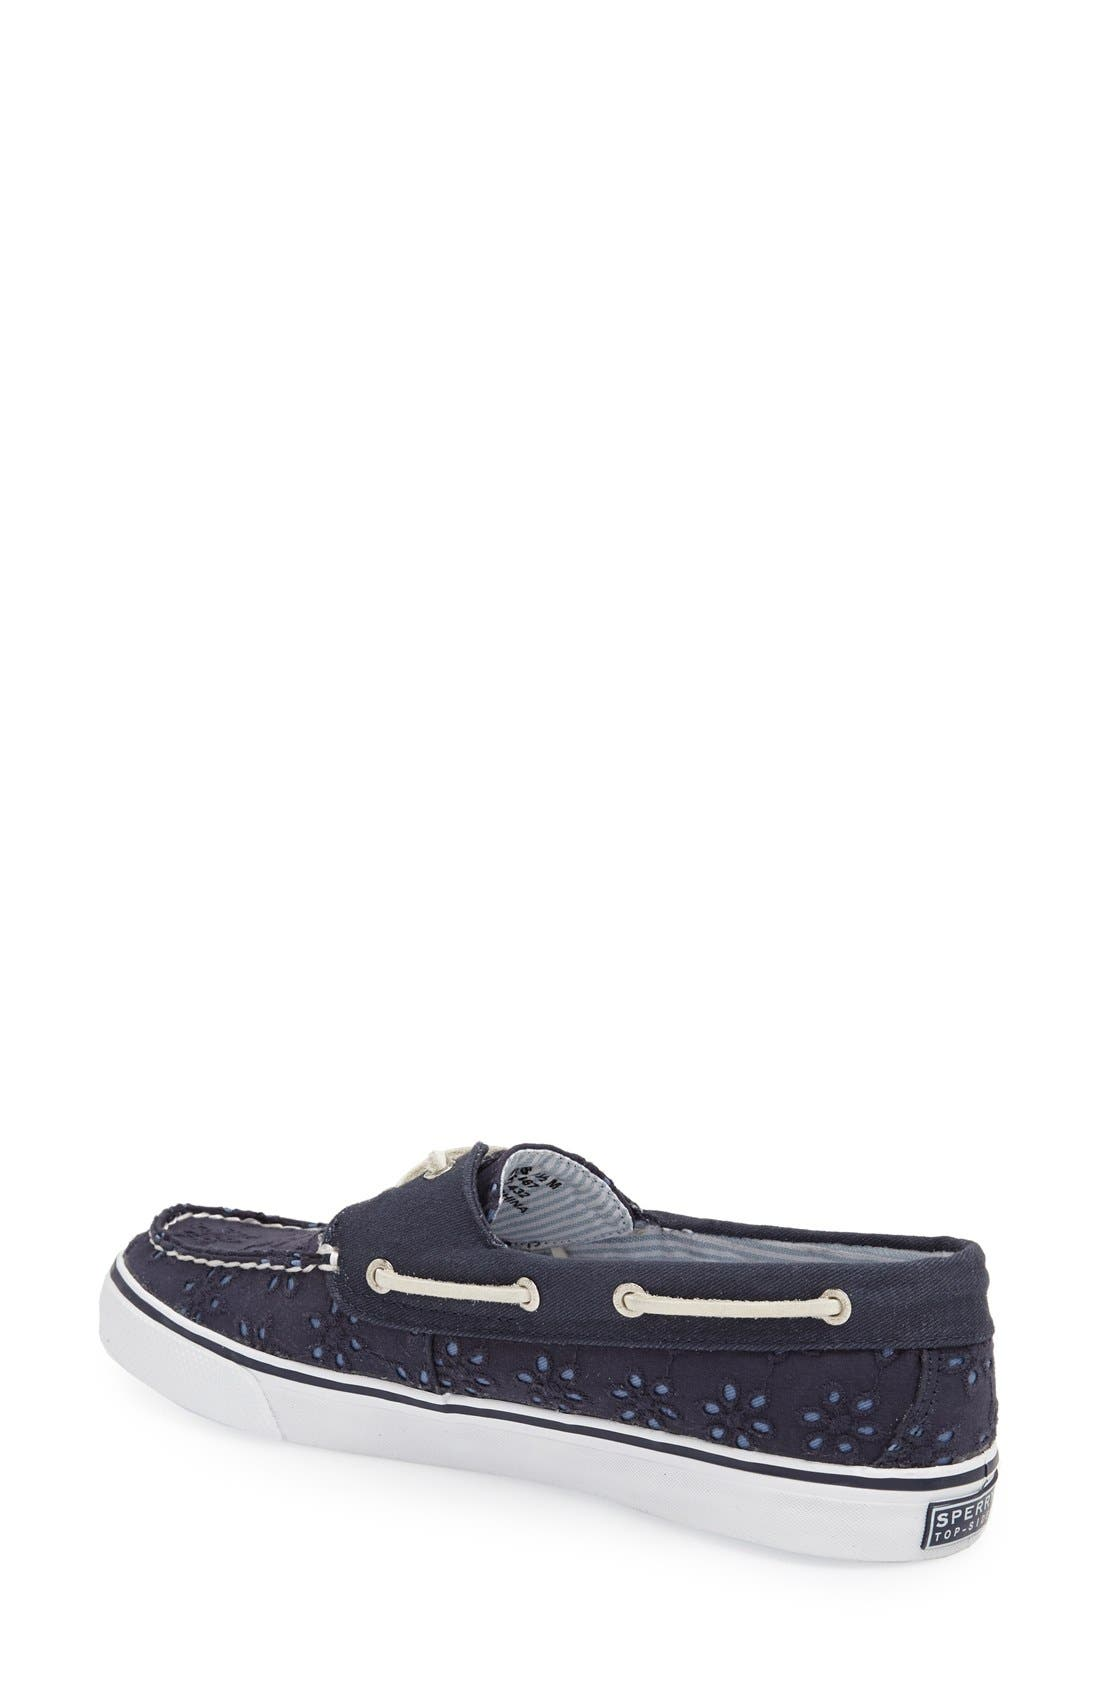 Top-Sider<sup>®</sup> 'Bahama' Sequined Boat Shoe,                             Alternate thumbnail 150, color,